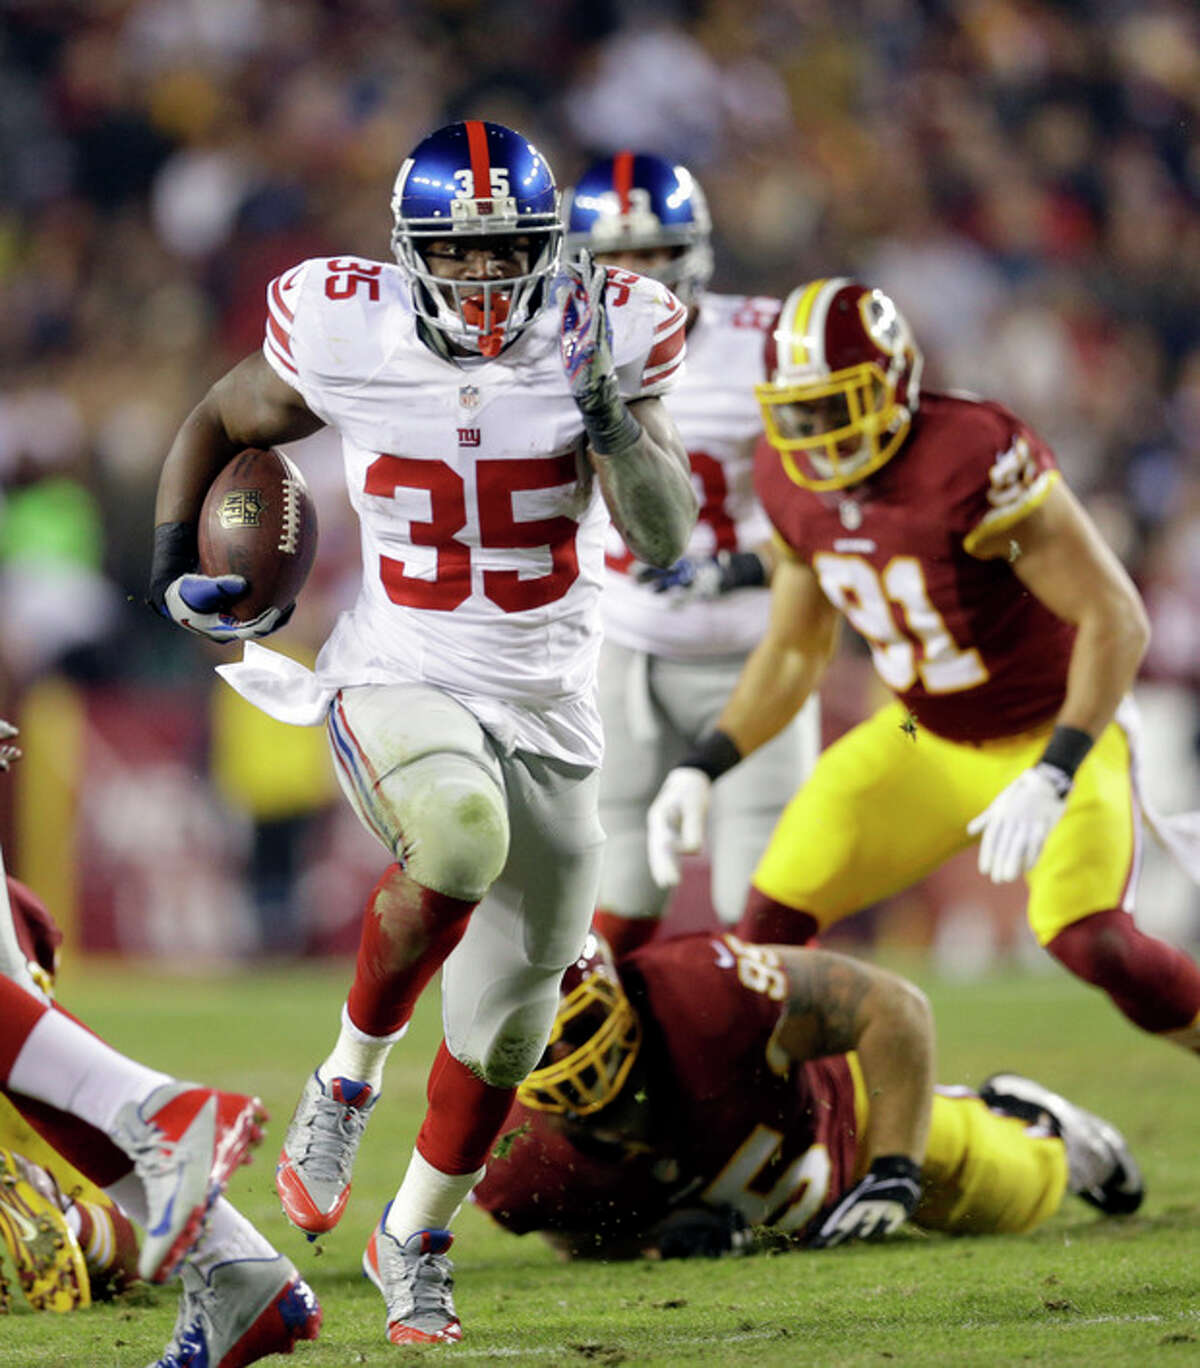 New York Giants running back Andre Brown (35) gets away from Washington Redskins nose tackle Chris Neild (95), to score a touchdown, during the first half of an NFL football game Sunday, Dec. 1, 2013, in Landover, Md. (AP Photo/Patrick Semansky)